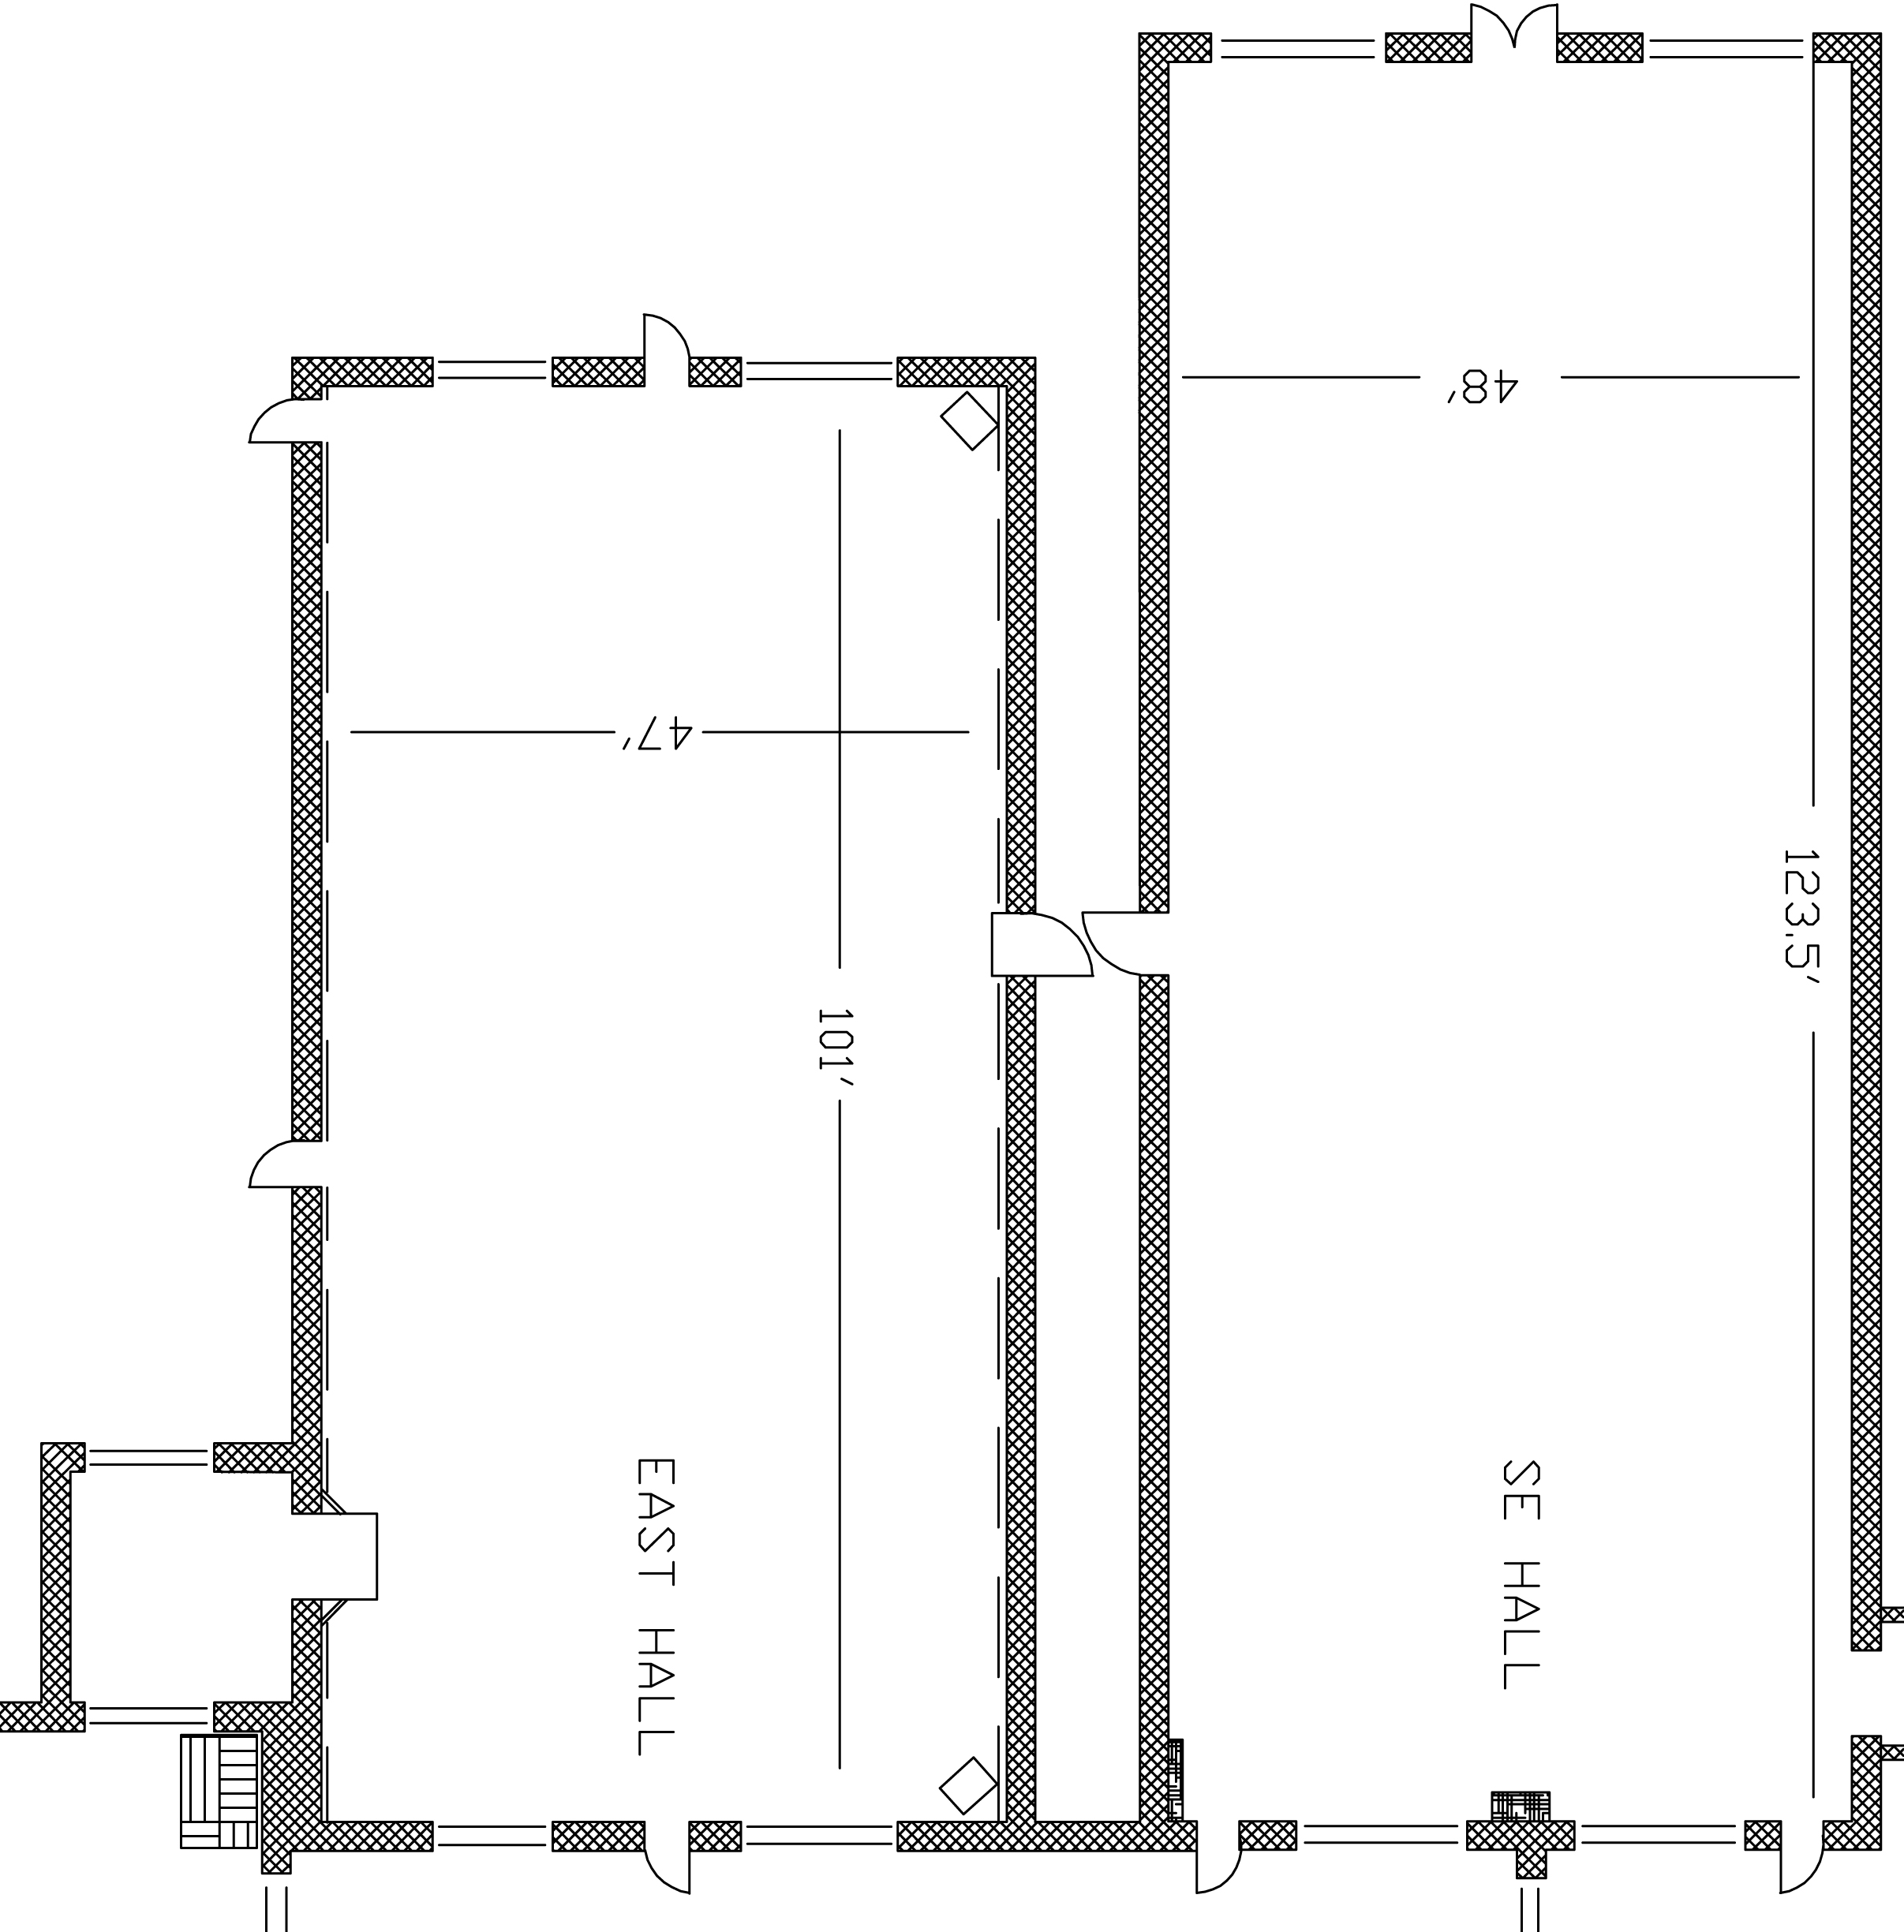 East and Southeast Hall - Floor Plan